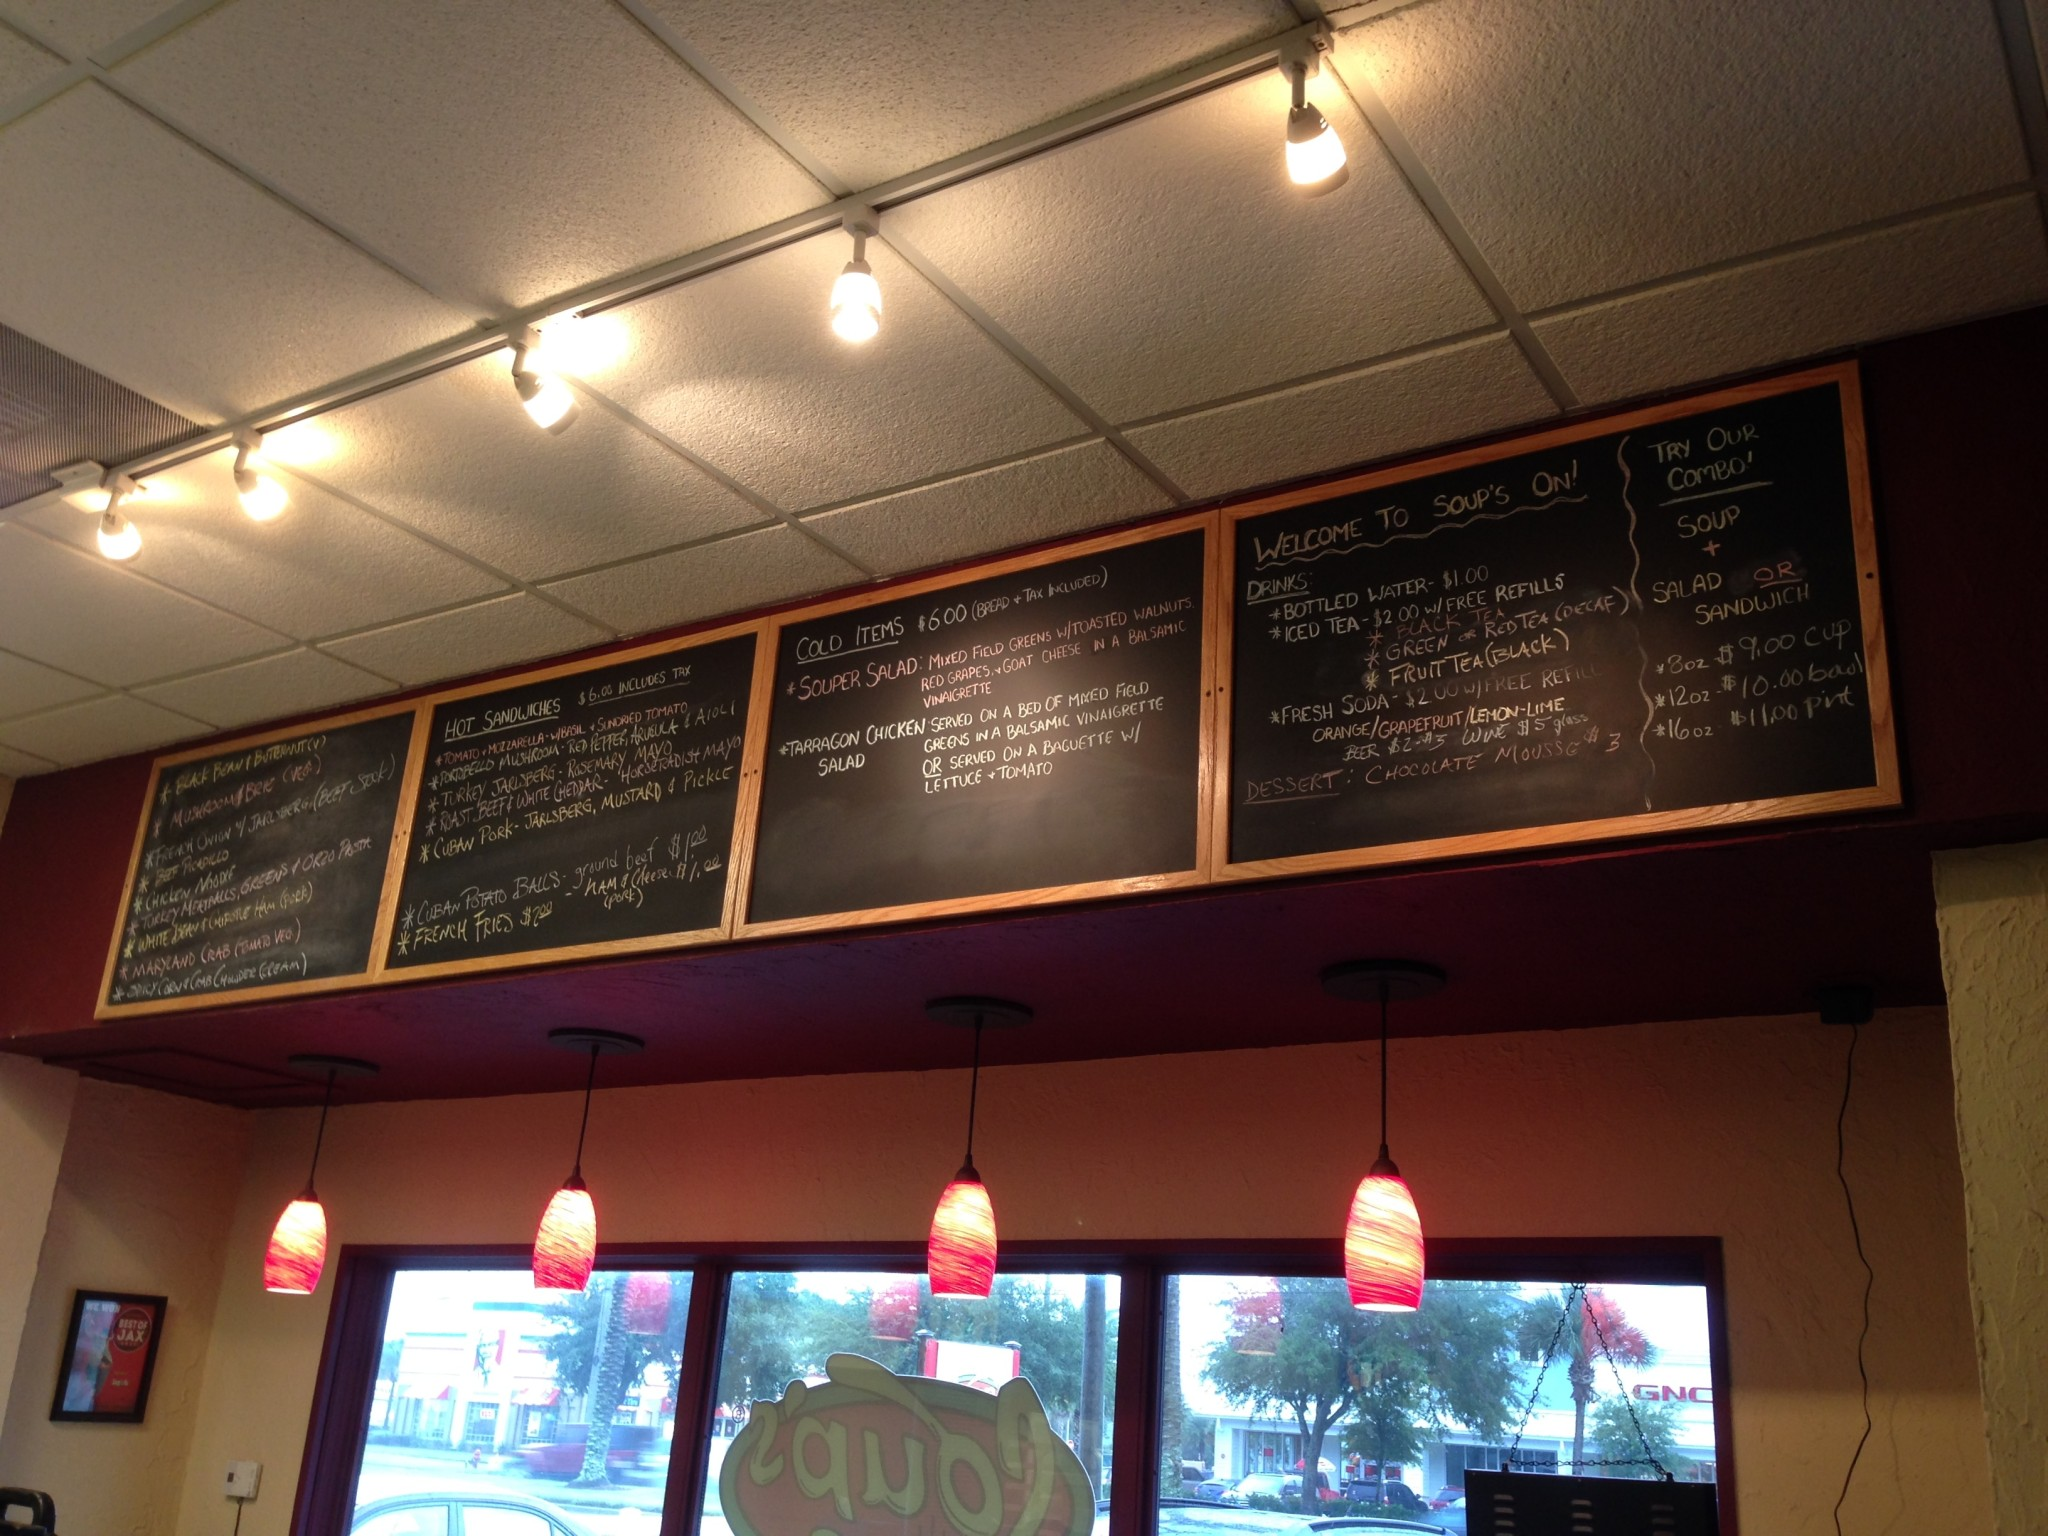 menu soups Hale and hearty soups - fast casual restaurant serving wide variety of freshly-made soups,salads sandwiches and simmers nyc & boston.